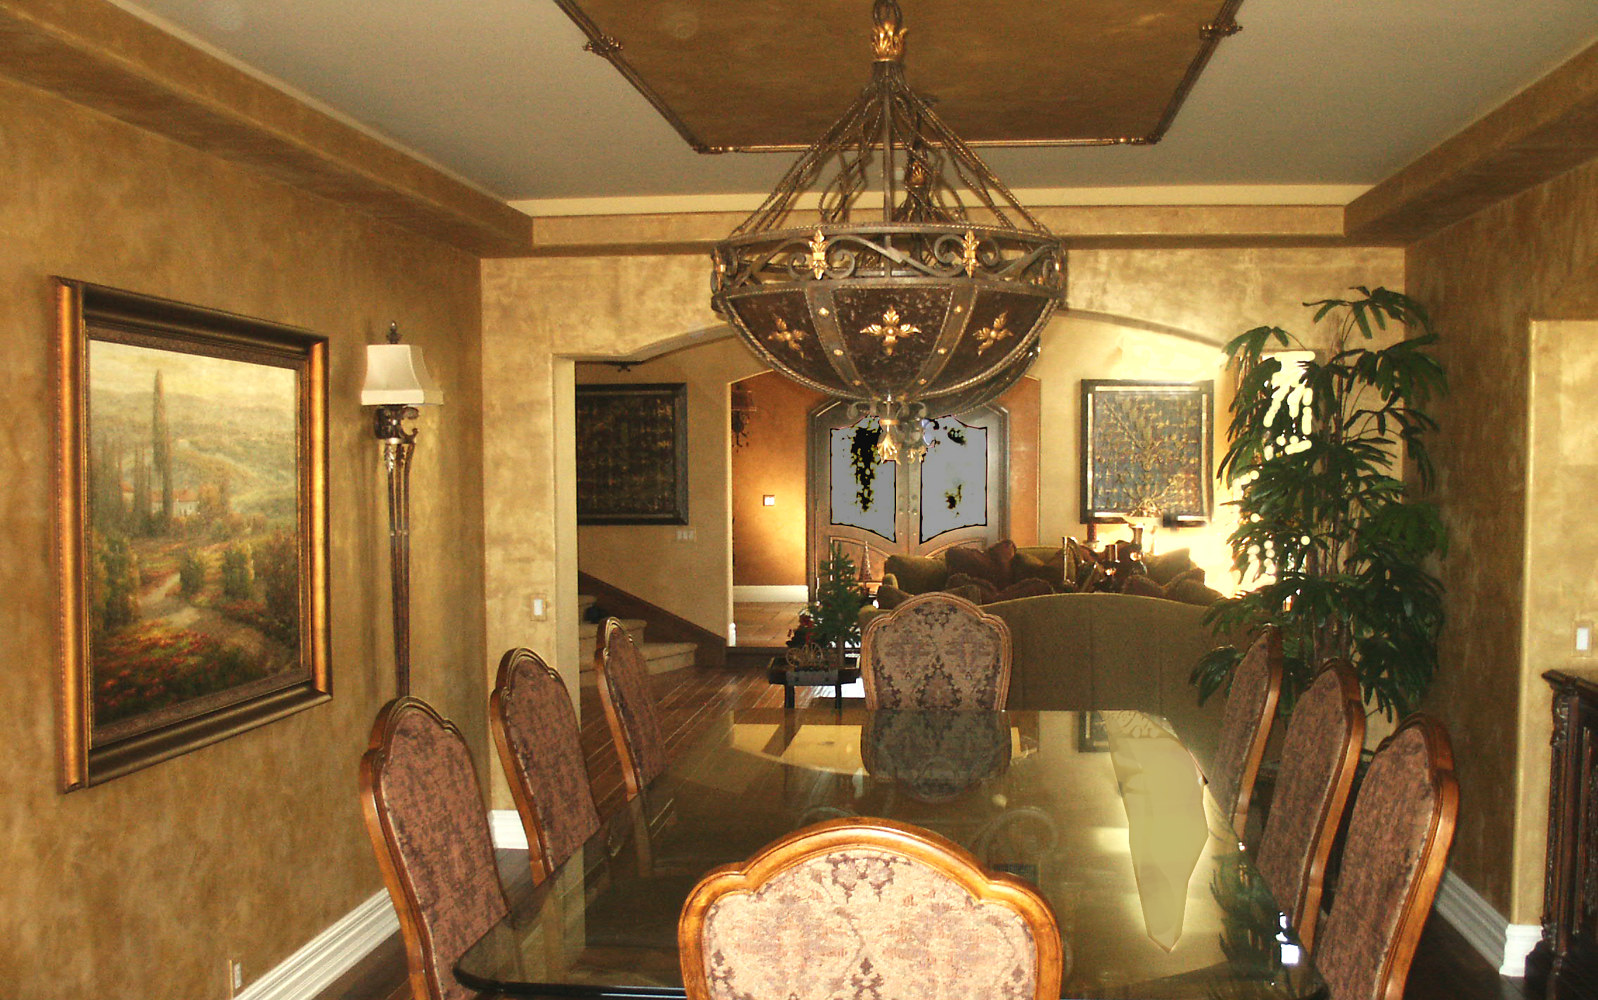 Anaheim Hills Metallic Plaster Dining Room web 1 by Robert Milling